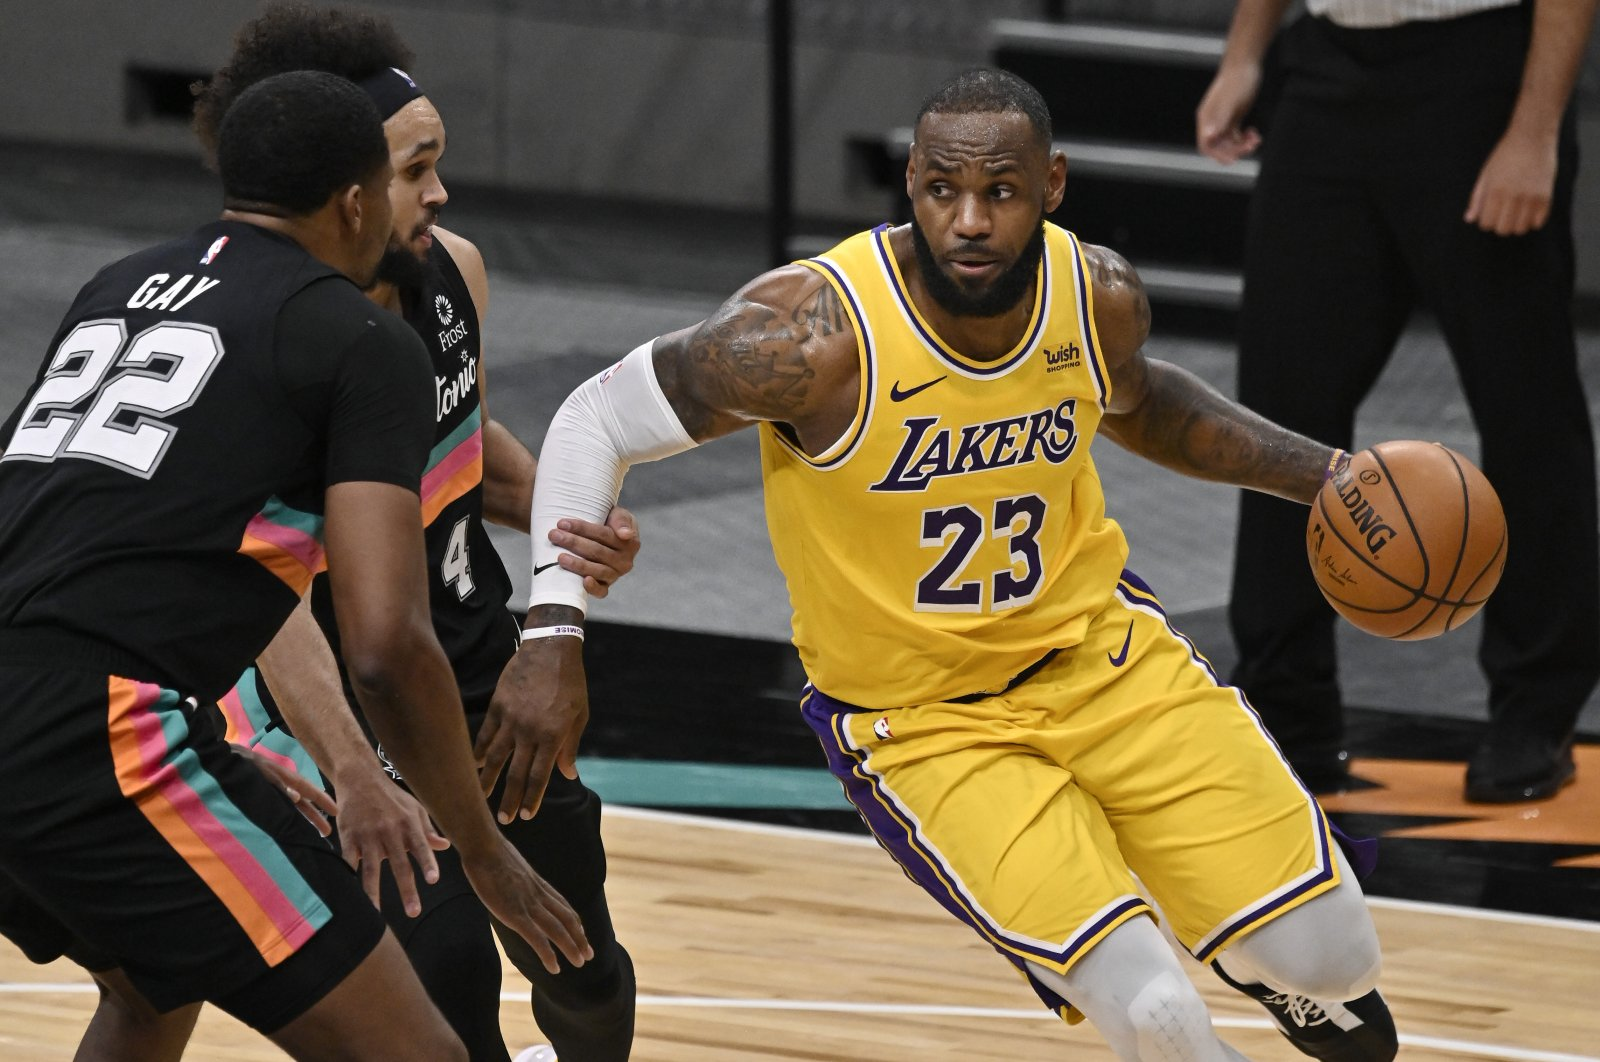 Los Angeles Lakers' LeBron James (23) drives against San Antonio Spurs' Rudy Gay (22) and Derrick White during the second half of an NBA basketball game Friday, Jan. 1, 2021, in San Antonio. (AP Photo)